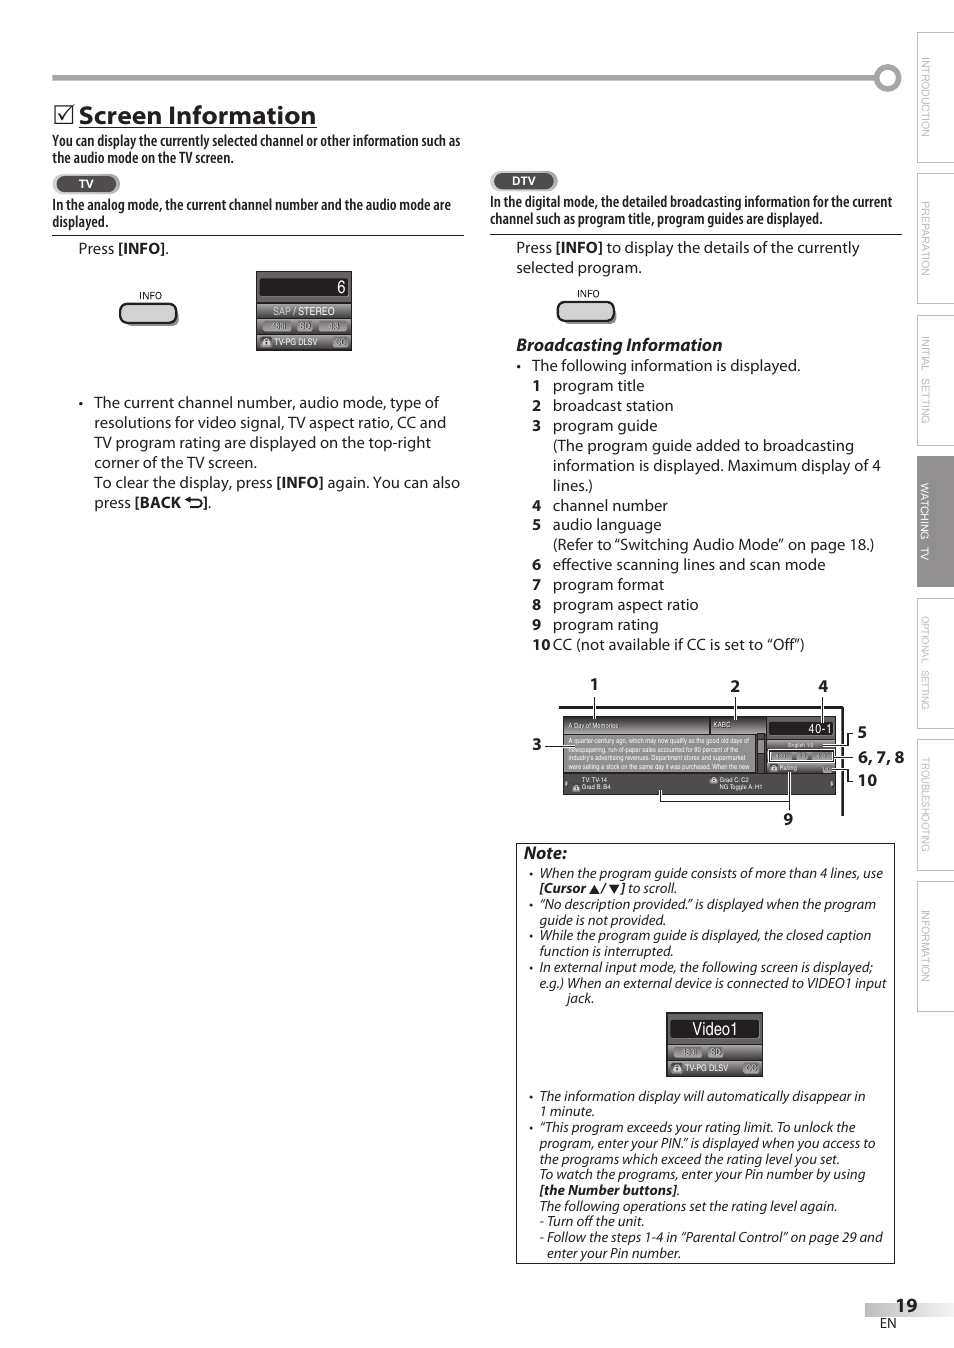 Screen information, Broadcasting information, Video1 | Philips